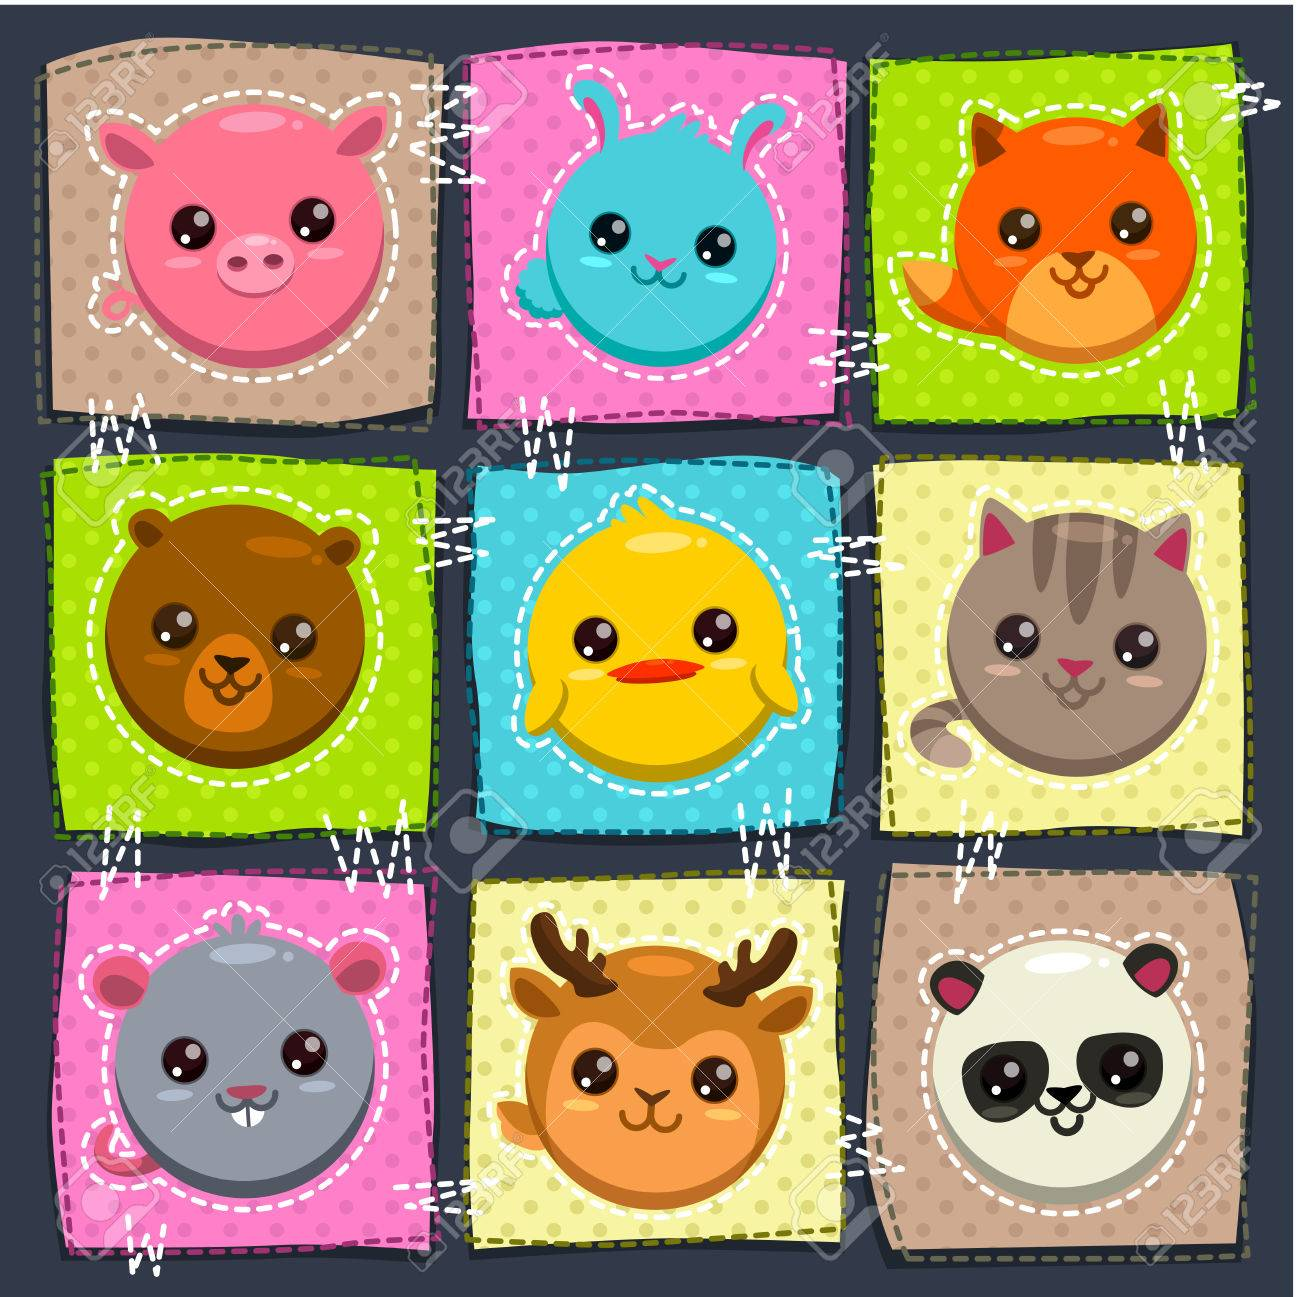 Image of: Photos Vector Vector Cute Childish Illustration With Funny Round Animals Blog Di Planetasia Altervista Vector Cute Childish Illustration With Funny Round Animals Royalty